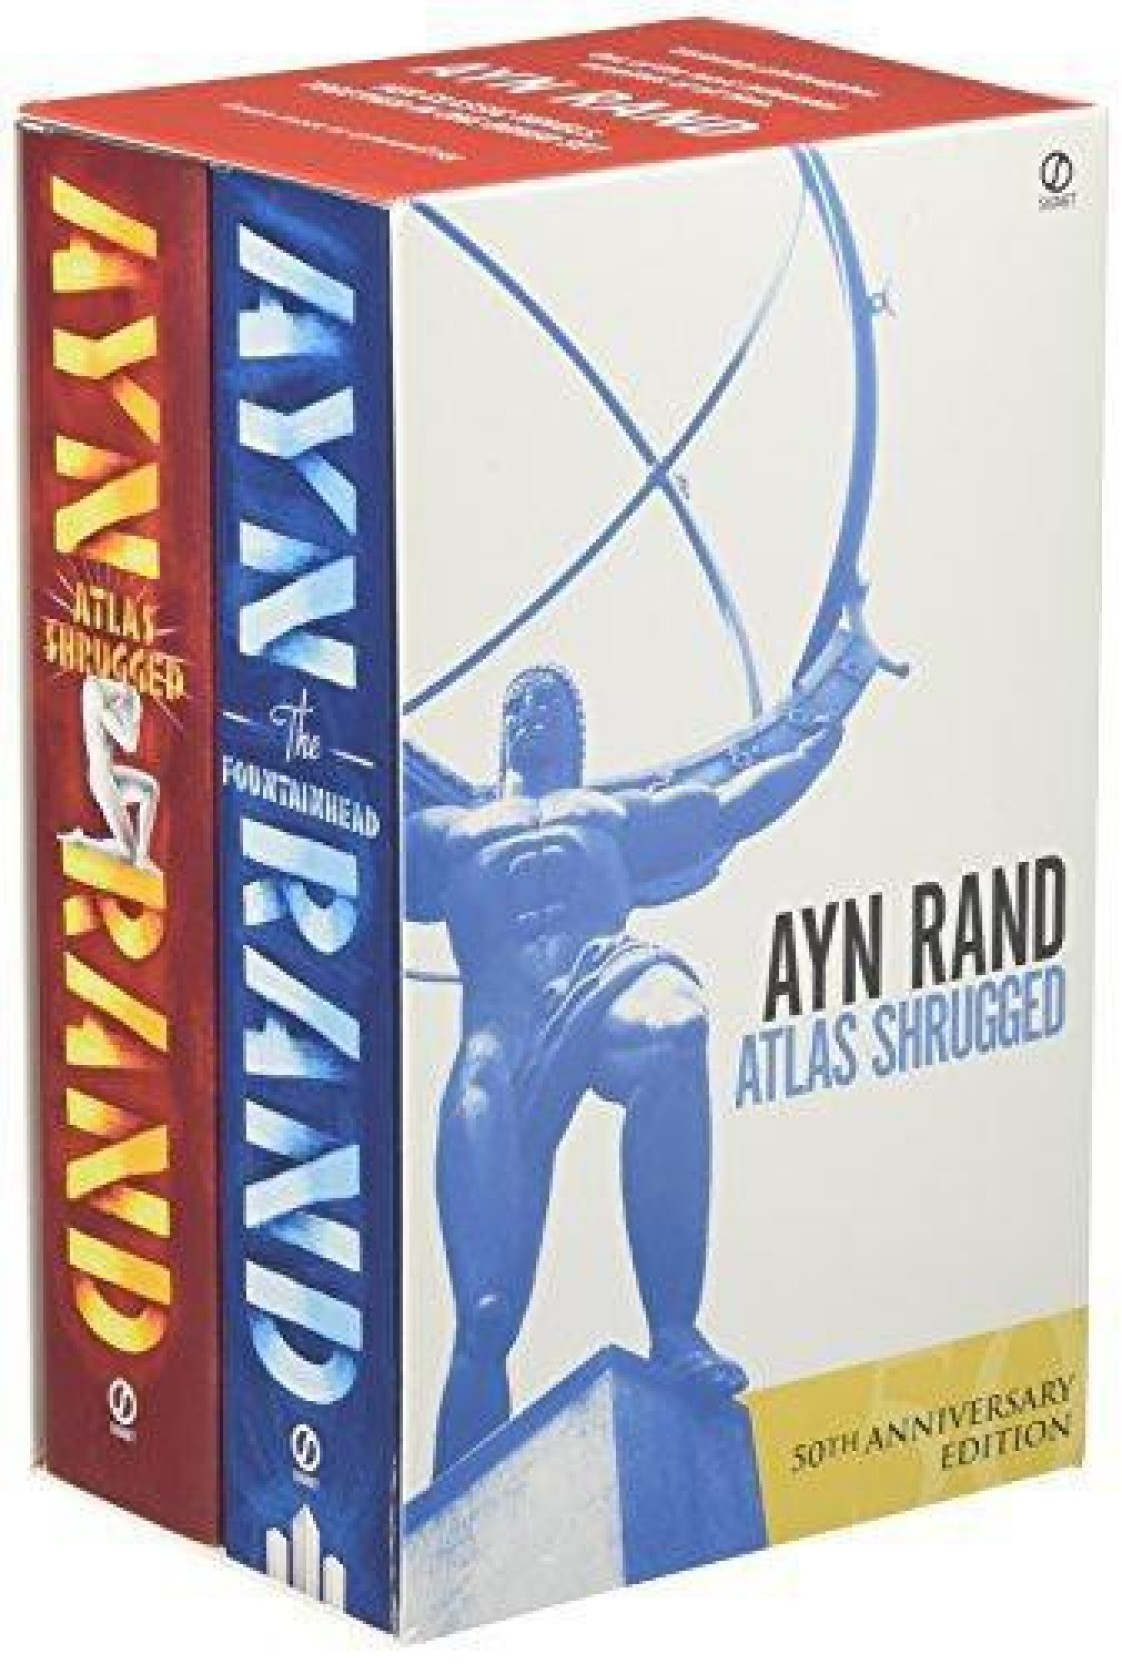 a review of atlas shrugged a science fiction novel by ayn rand One finds oneself virtually under an indefinable compulsion to keep reading once caught in the mesh of sheer story telling as ayn rand weaves the strands of her fantasy.